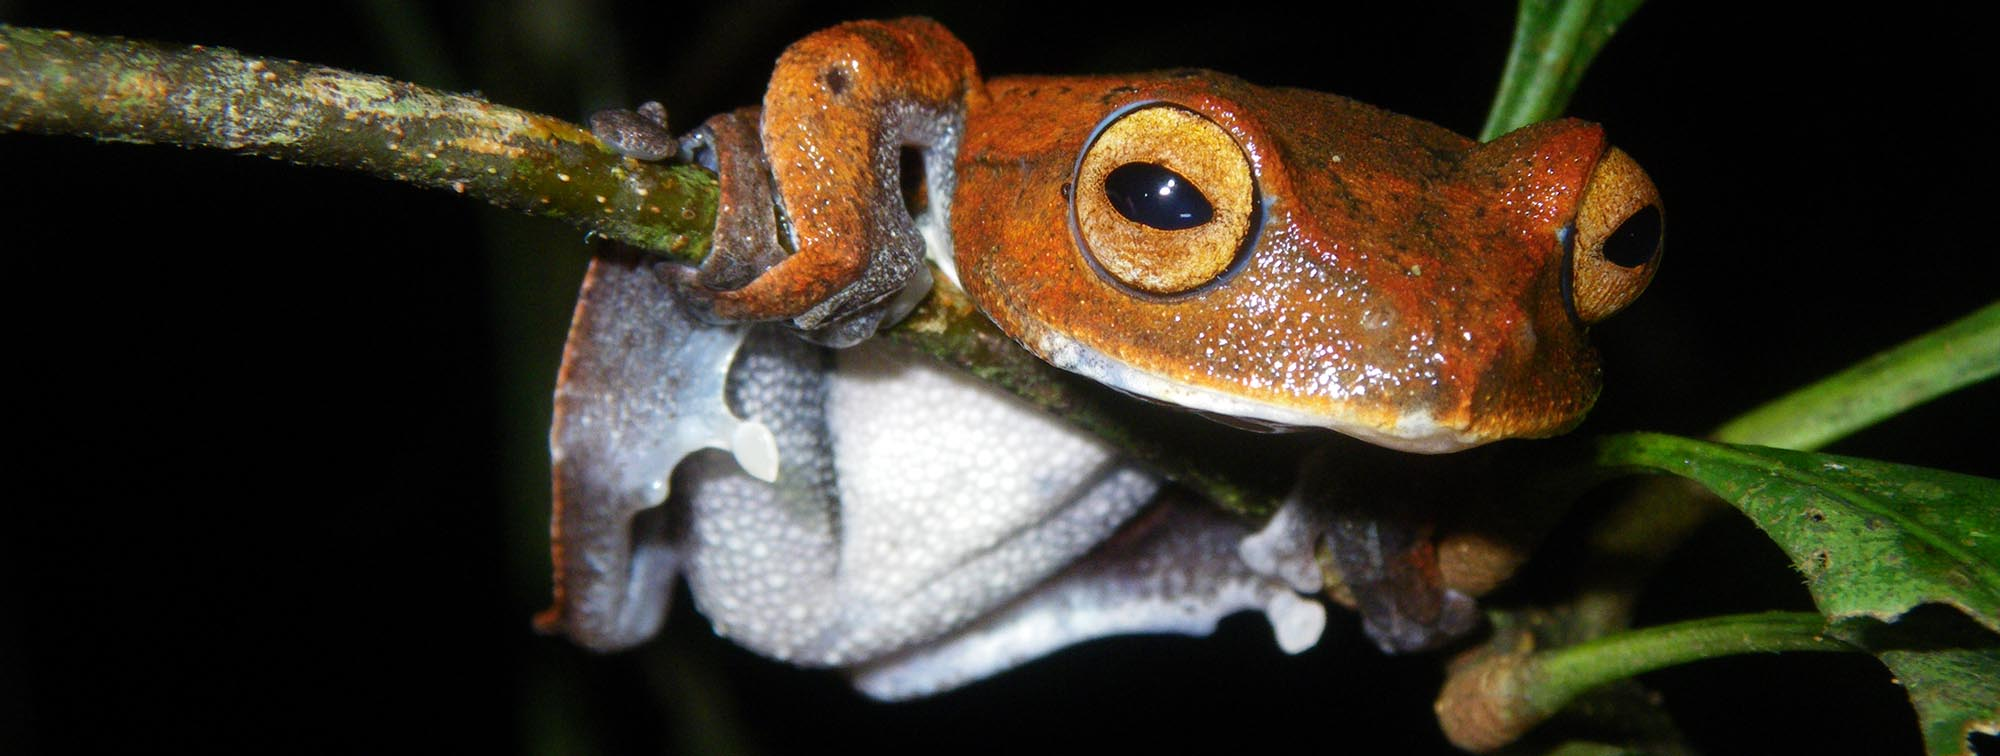 Why the official conservation status of species matters